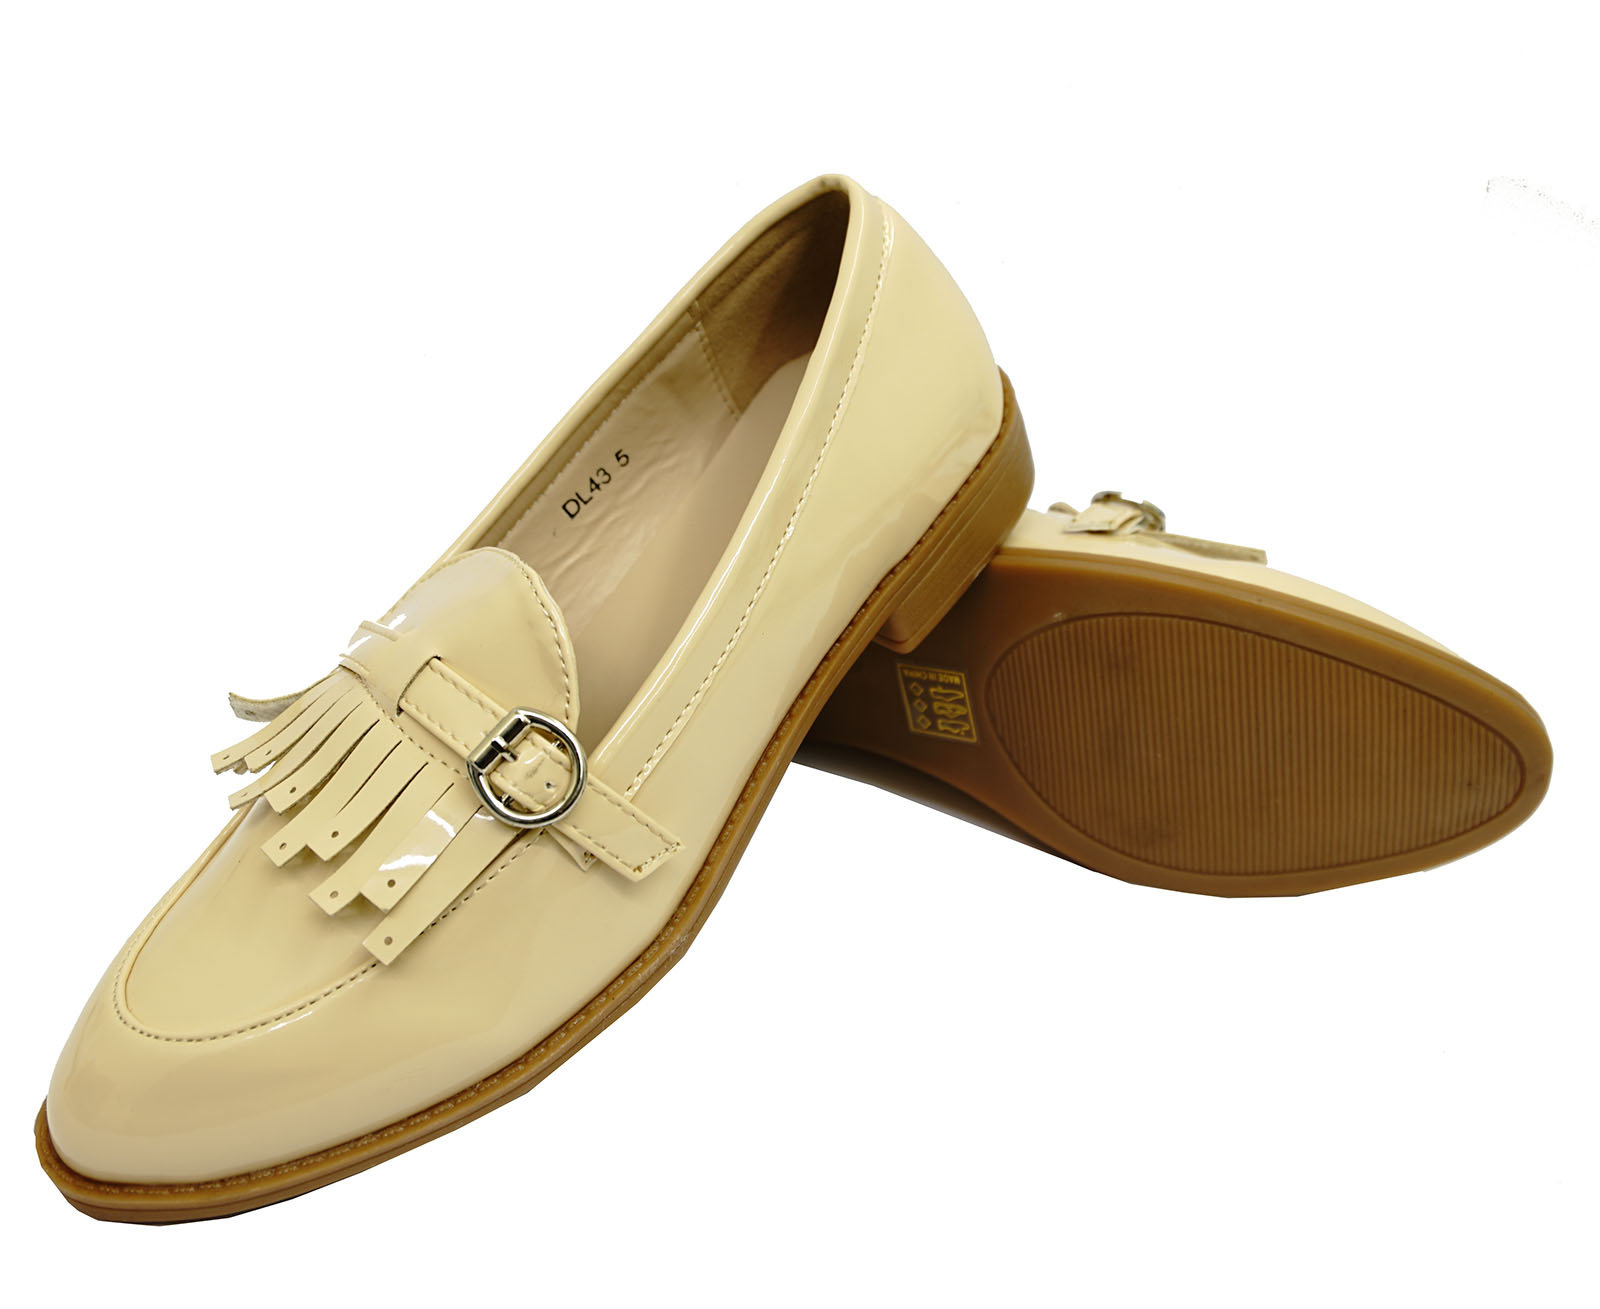 2cef0f21435 LADIES BEIGE SLIP-ON LOAFERS MOCCASIN CASUAL SMART WORK COMFY FLAT ...